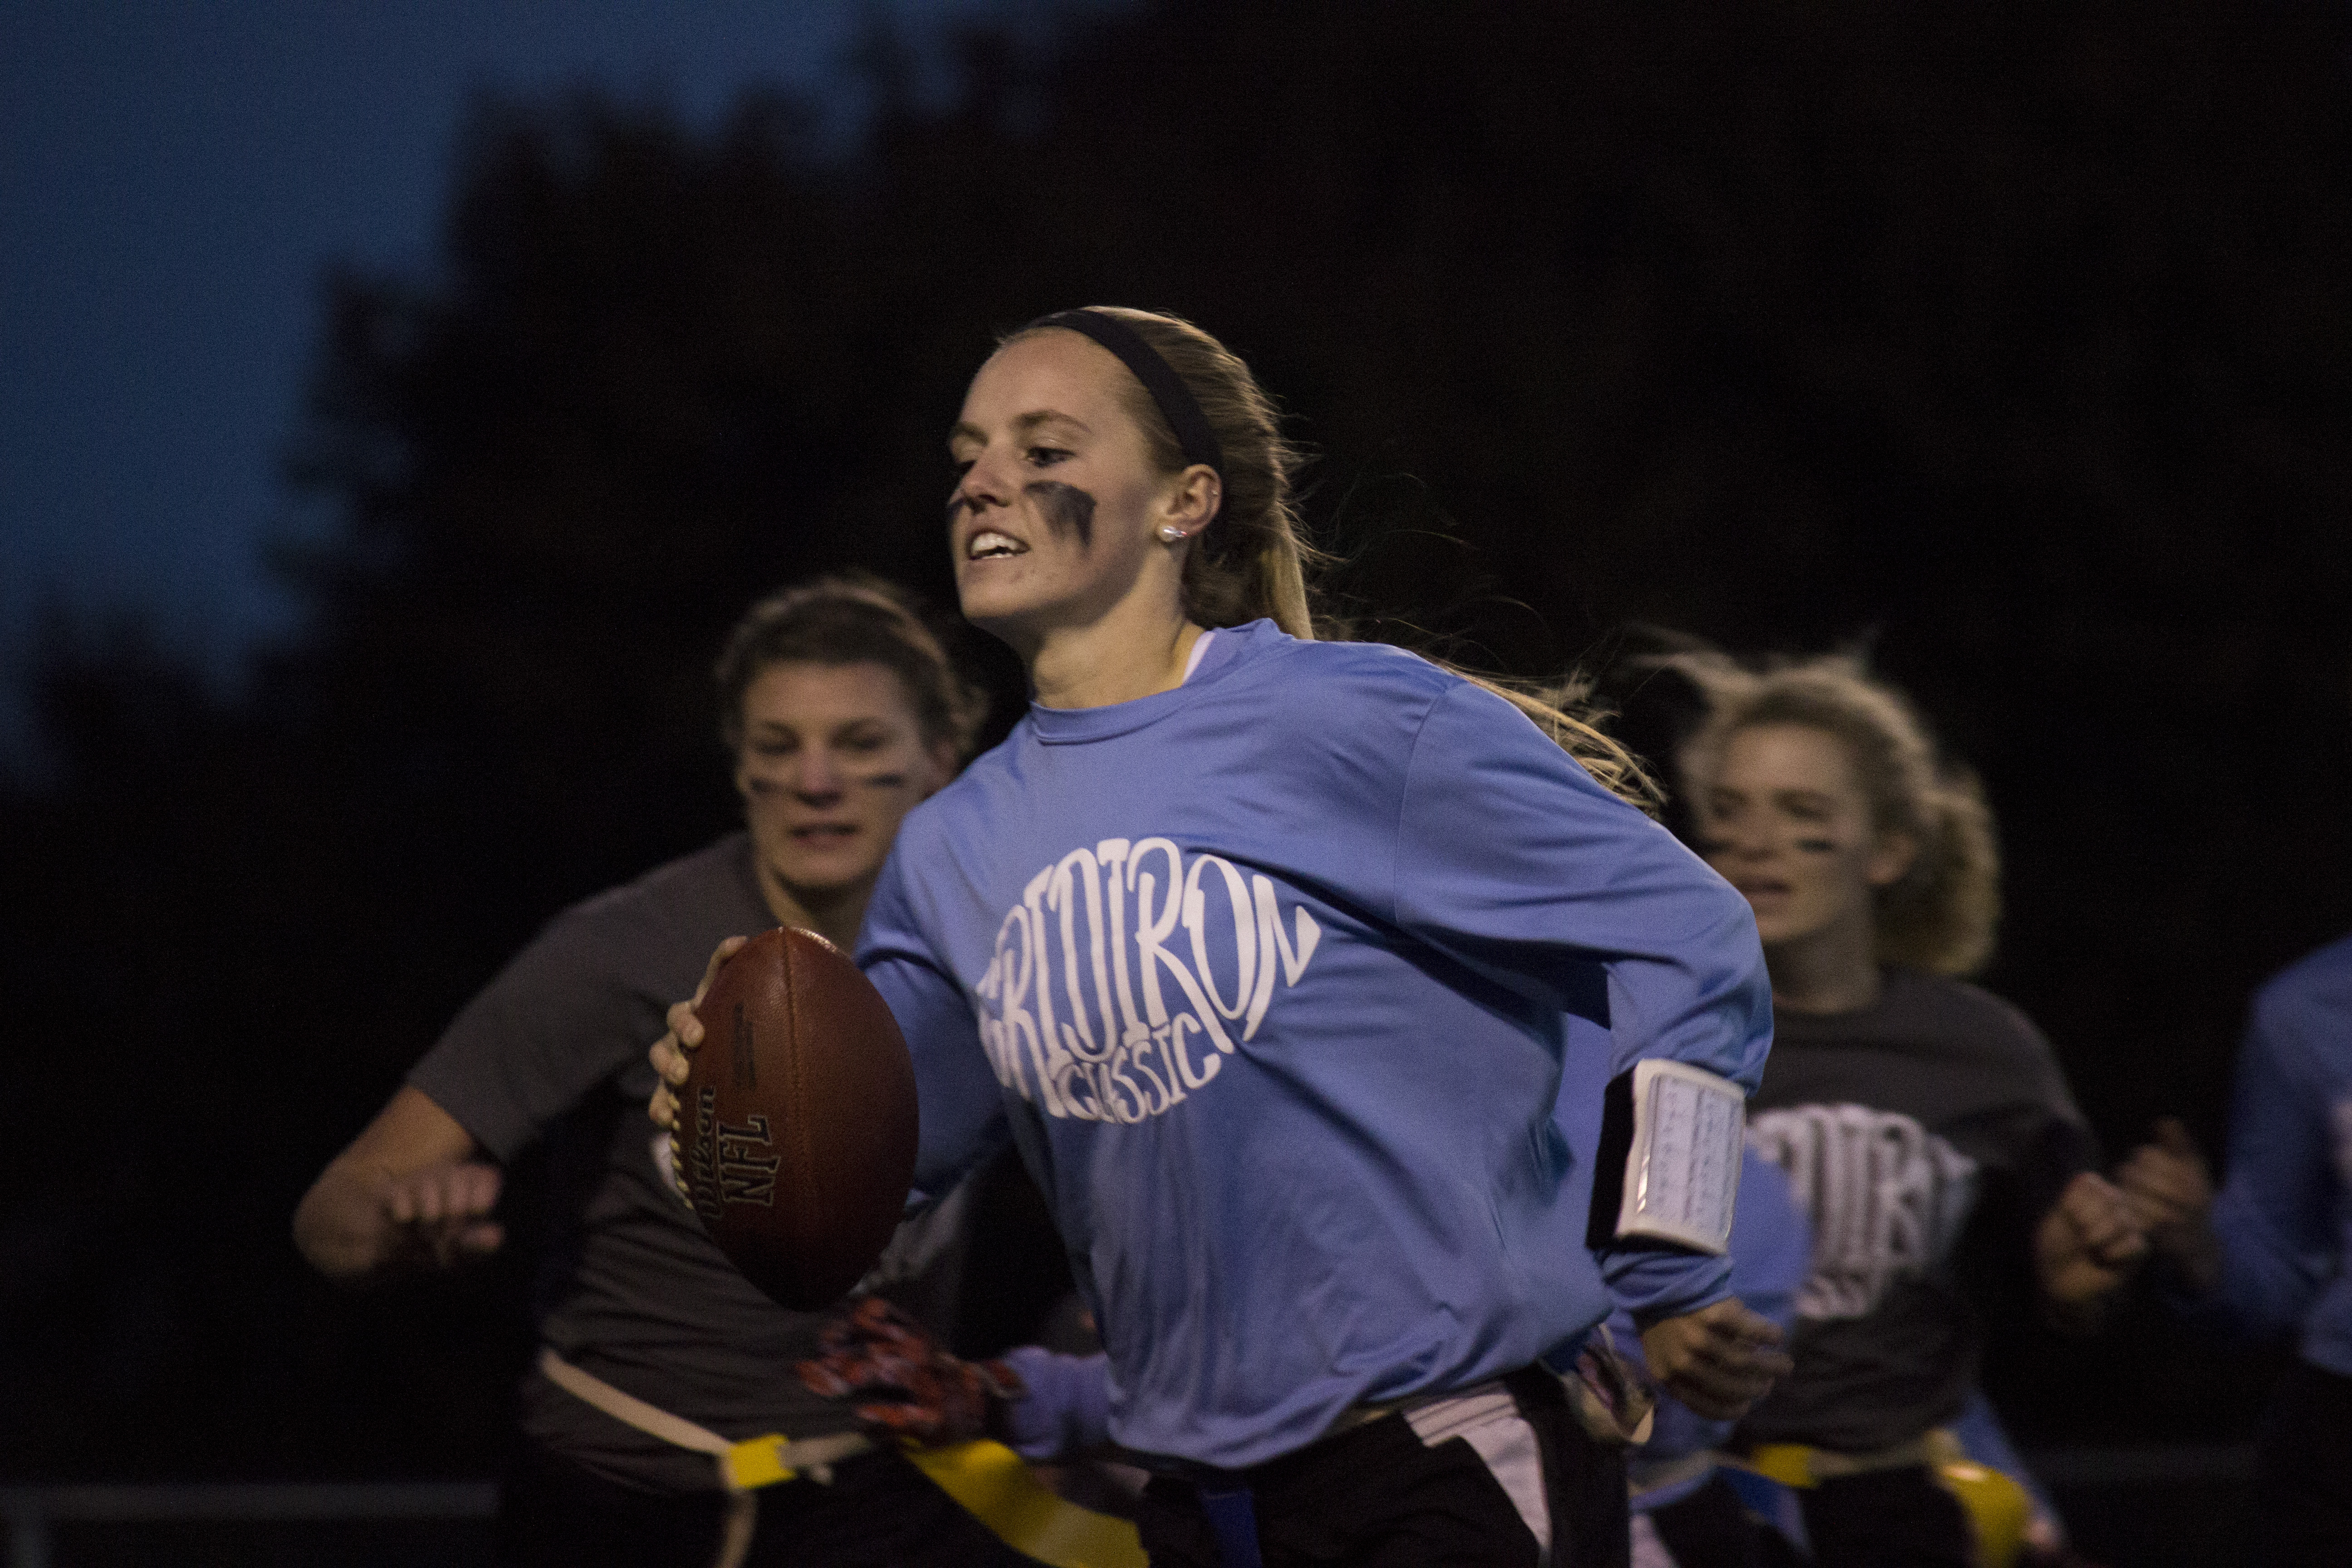 Sophomore Kelly Poole leads the Printy team to yet another consecutive Gridiron victory.